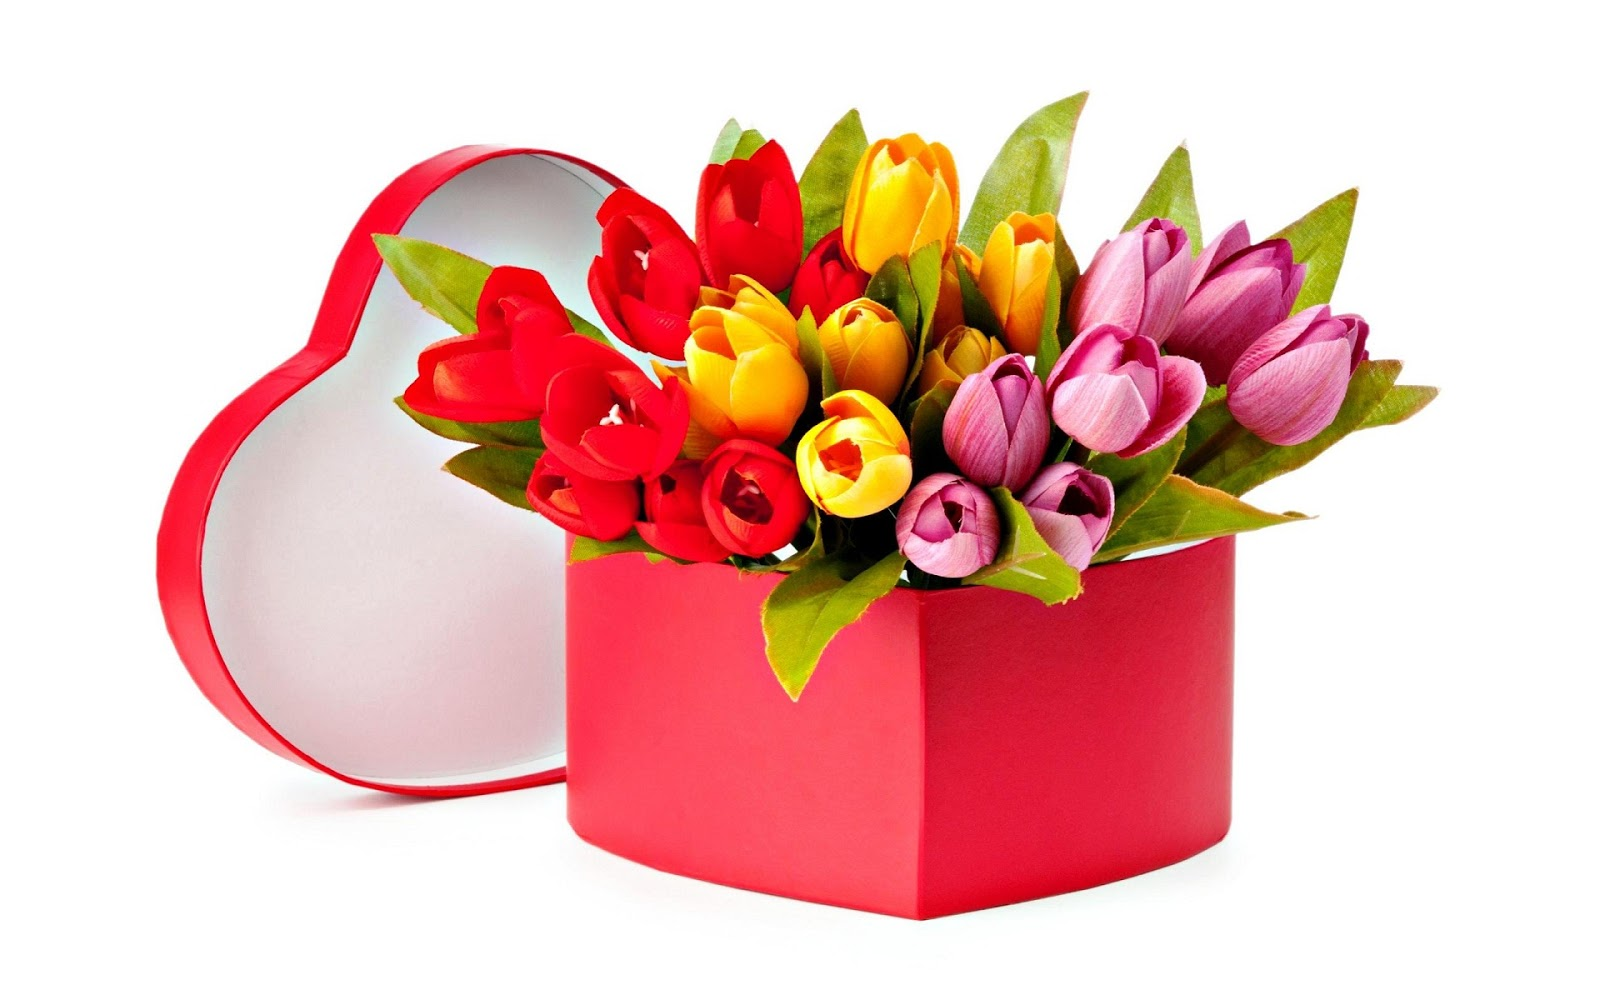 Heart-shape-gift-box-of-tulip-flowers